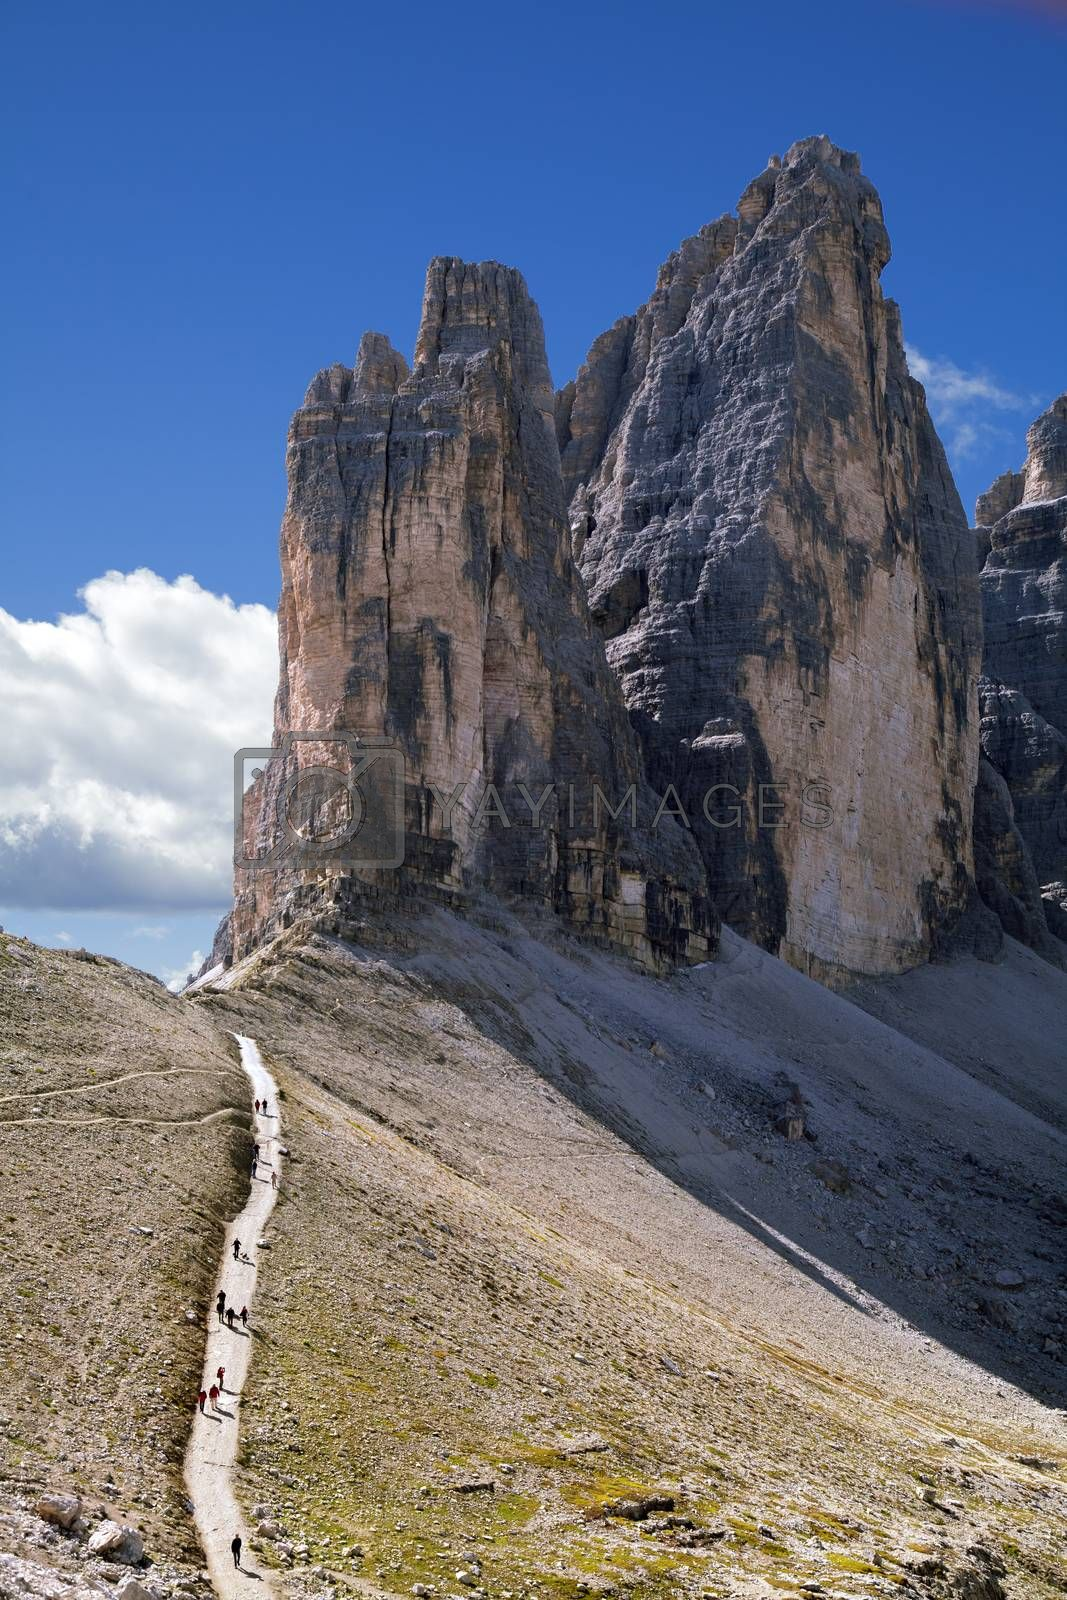 The Tre Cime di Lavaredo, three peaks in the Sexten Dolomites of Northern Italy